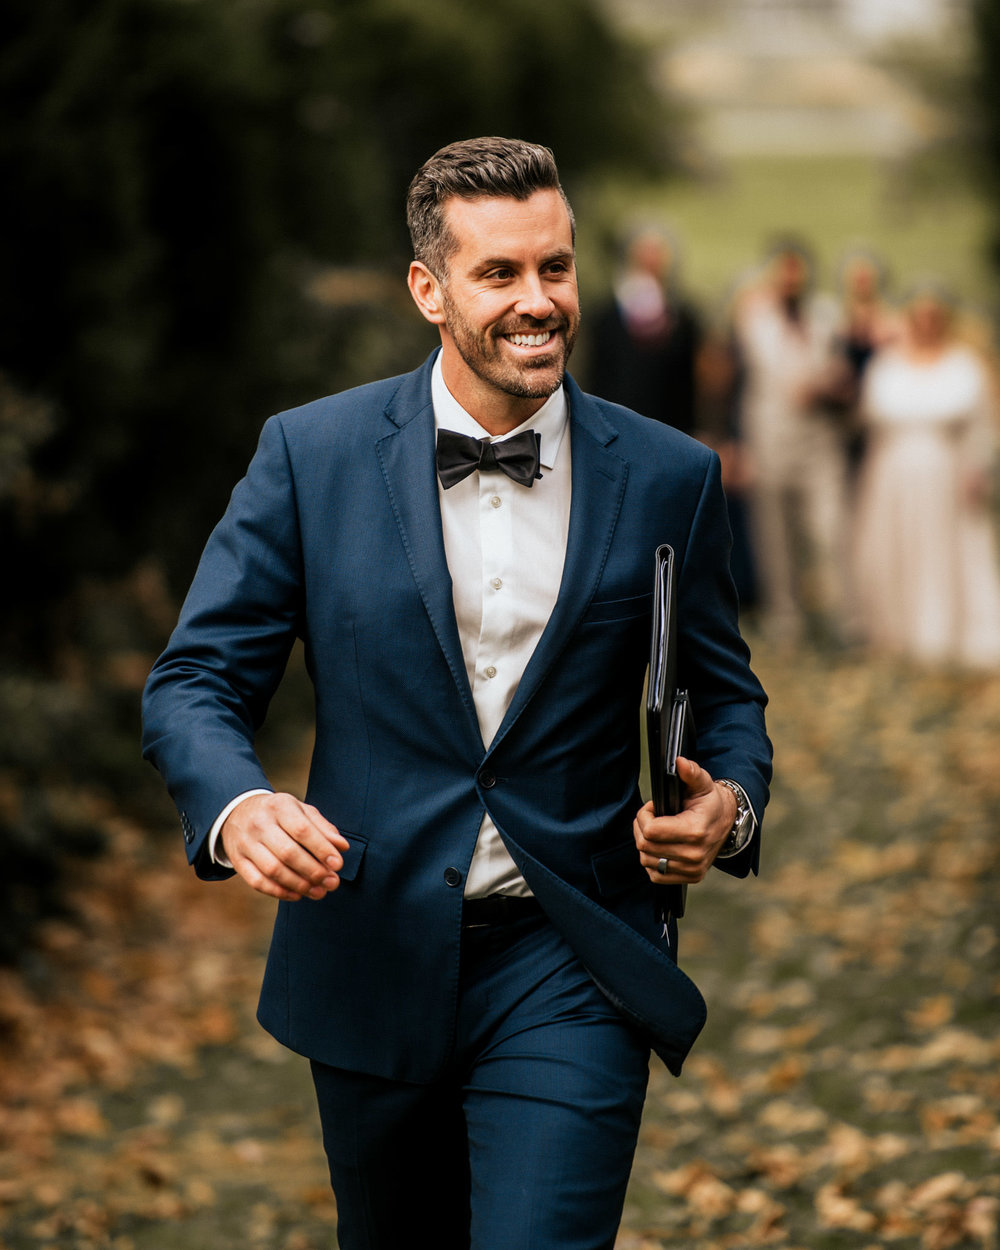 officiant-jeff-maeck-walks-down-aisle-before-ceremony-001.jpg